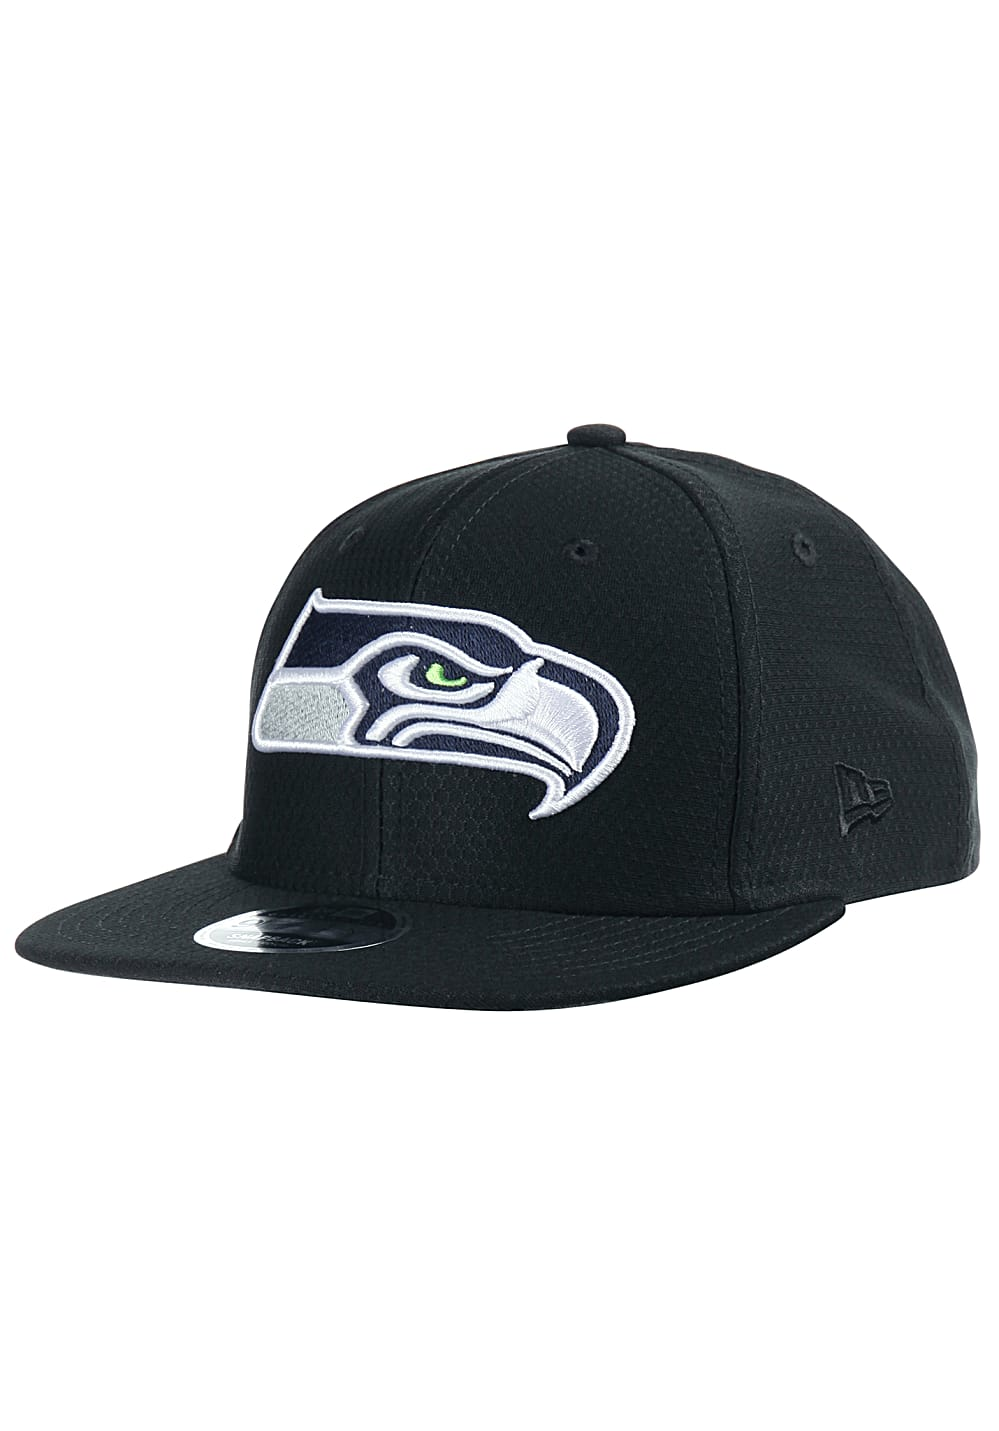 best authentic 40f48 573df Next. -20%. This product is currently out of stock. NEW Era. 9Fifty DryEra  Tech Seattle Seahawks - Snapback Cap